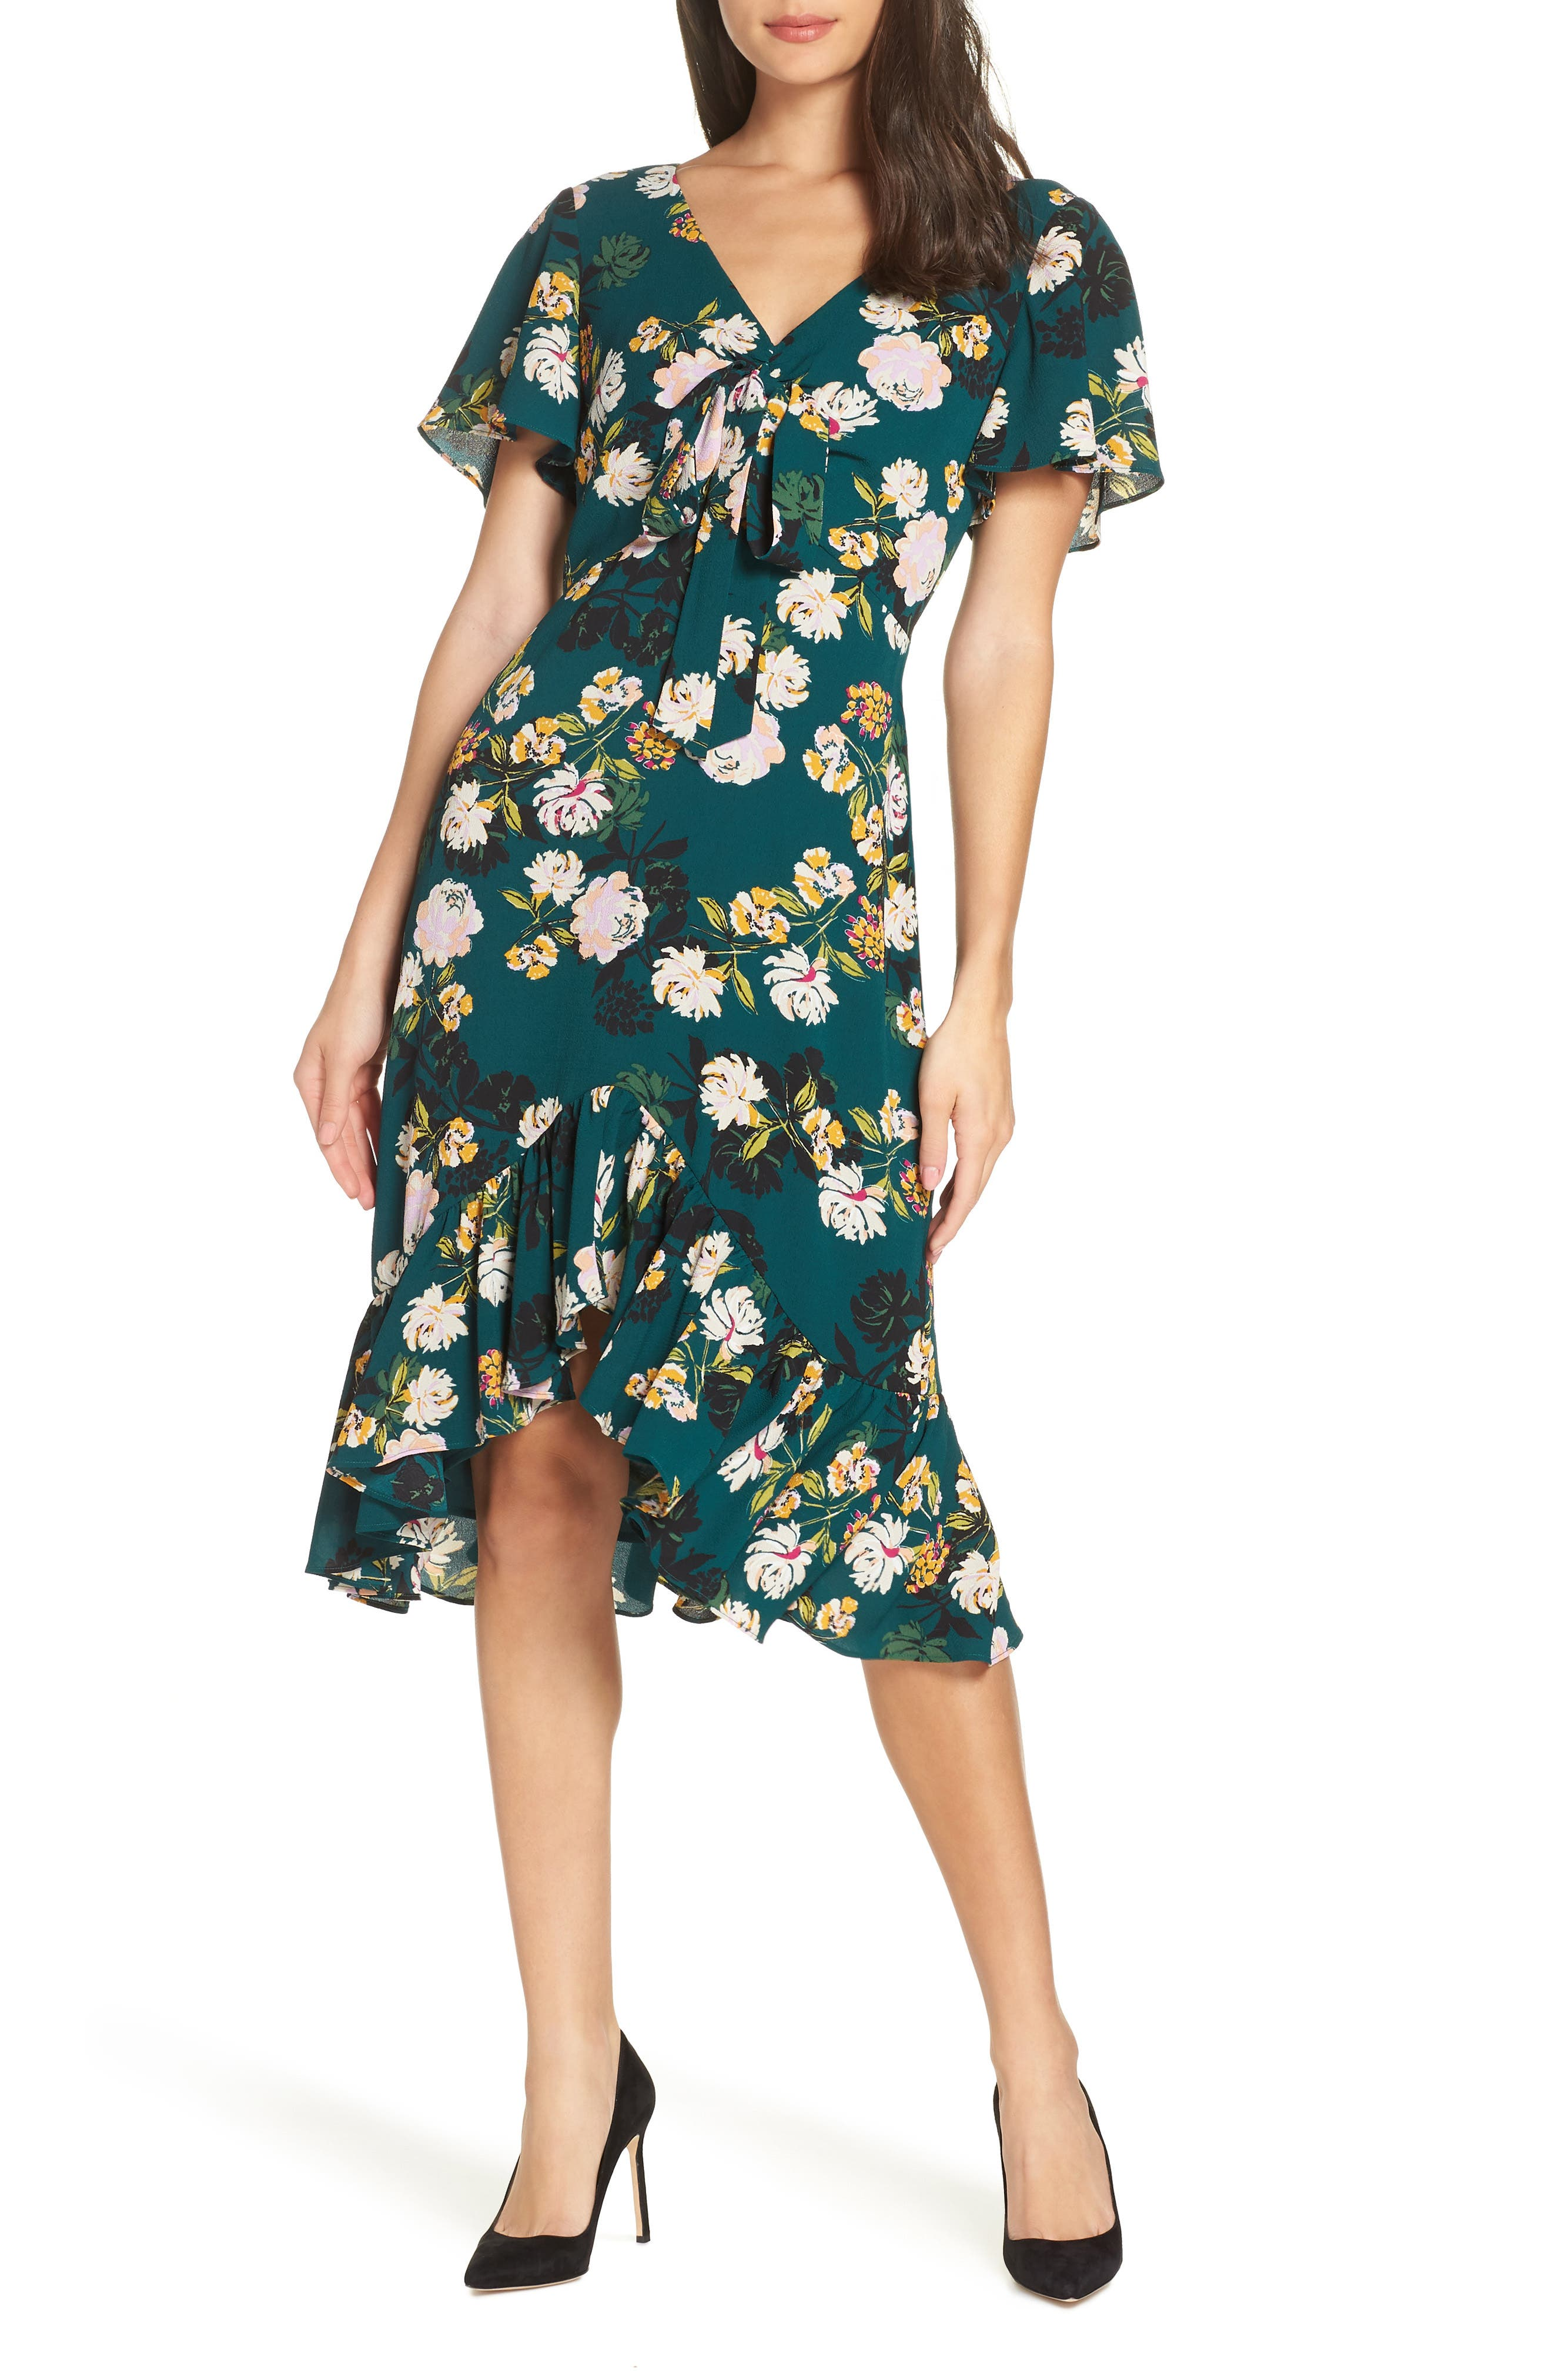 CHARLES HENRY Floral Print Ruffle Hem Dress in Dark Teal Floral